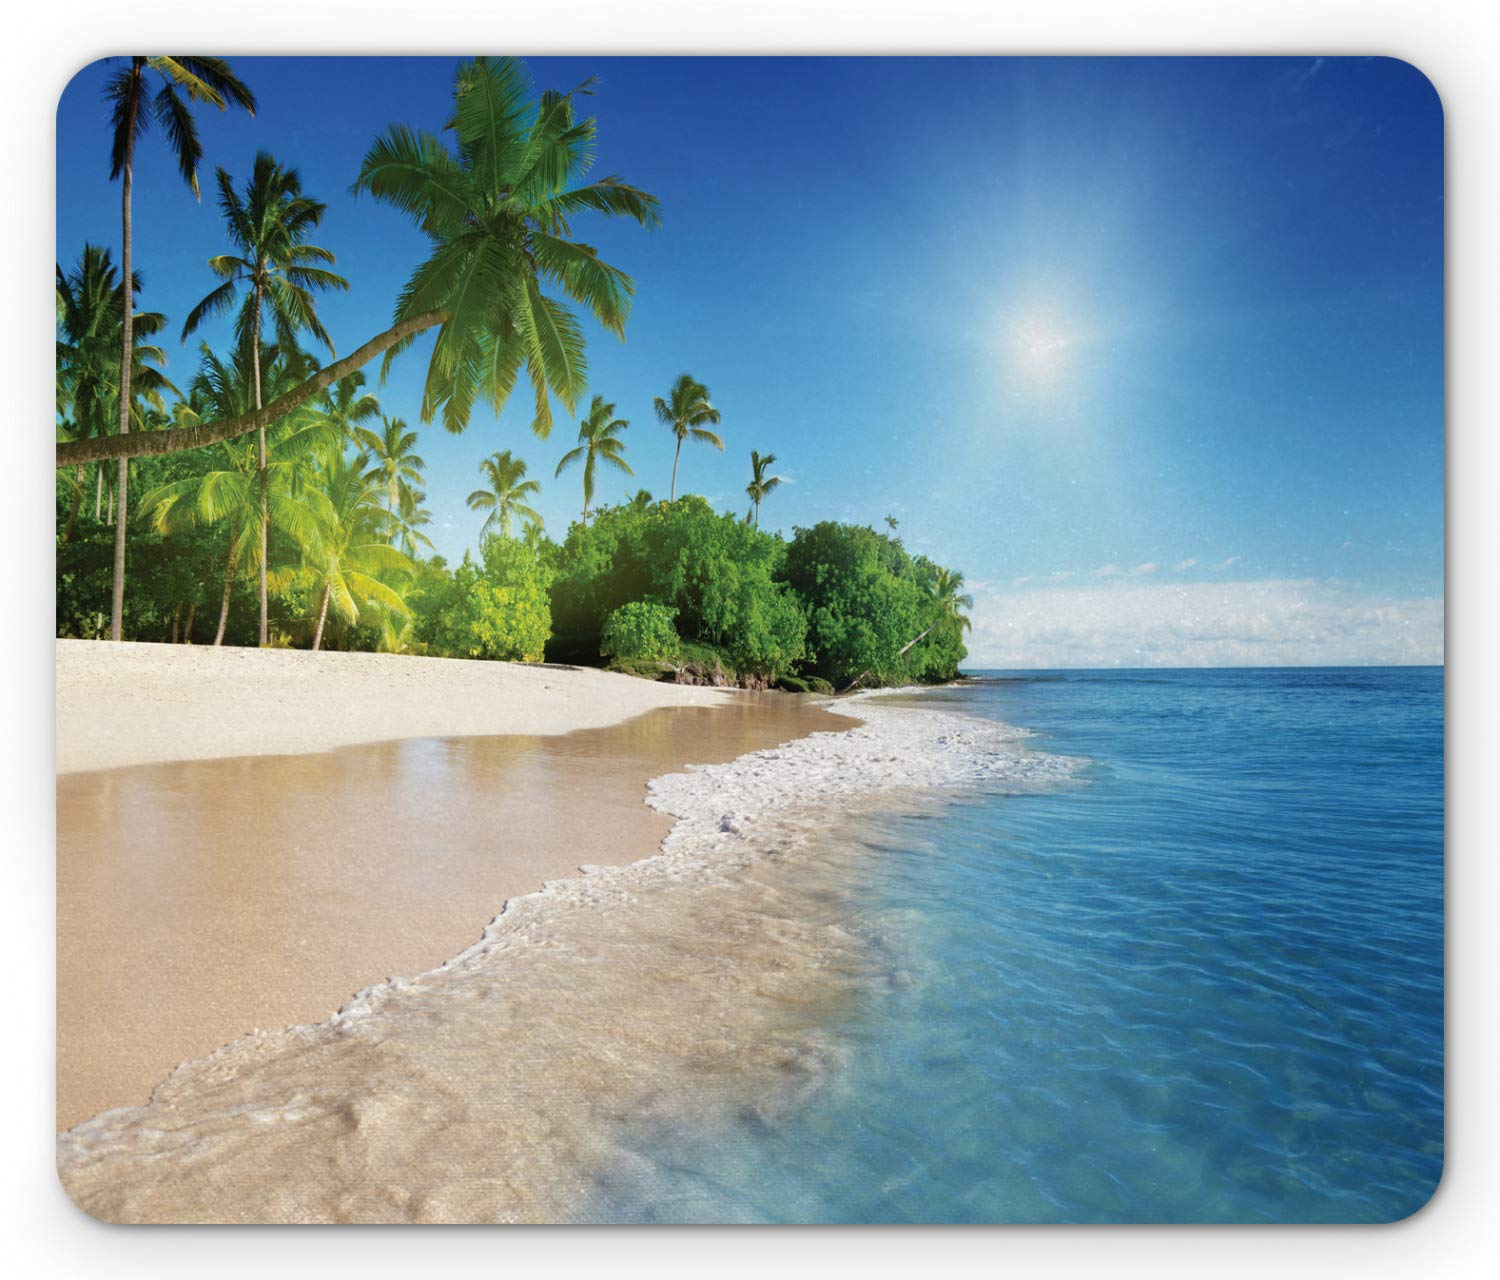 Ambesonne Blue Mouse Pad, Ocean Tropical Palm Trees on Sunny Island Beach Scene Panoramic View Picture, Standard Size Rectangle Non-Slip Rubber Mousepad, Blue Green and White